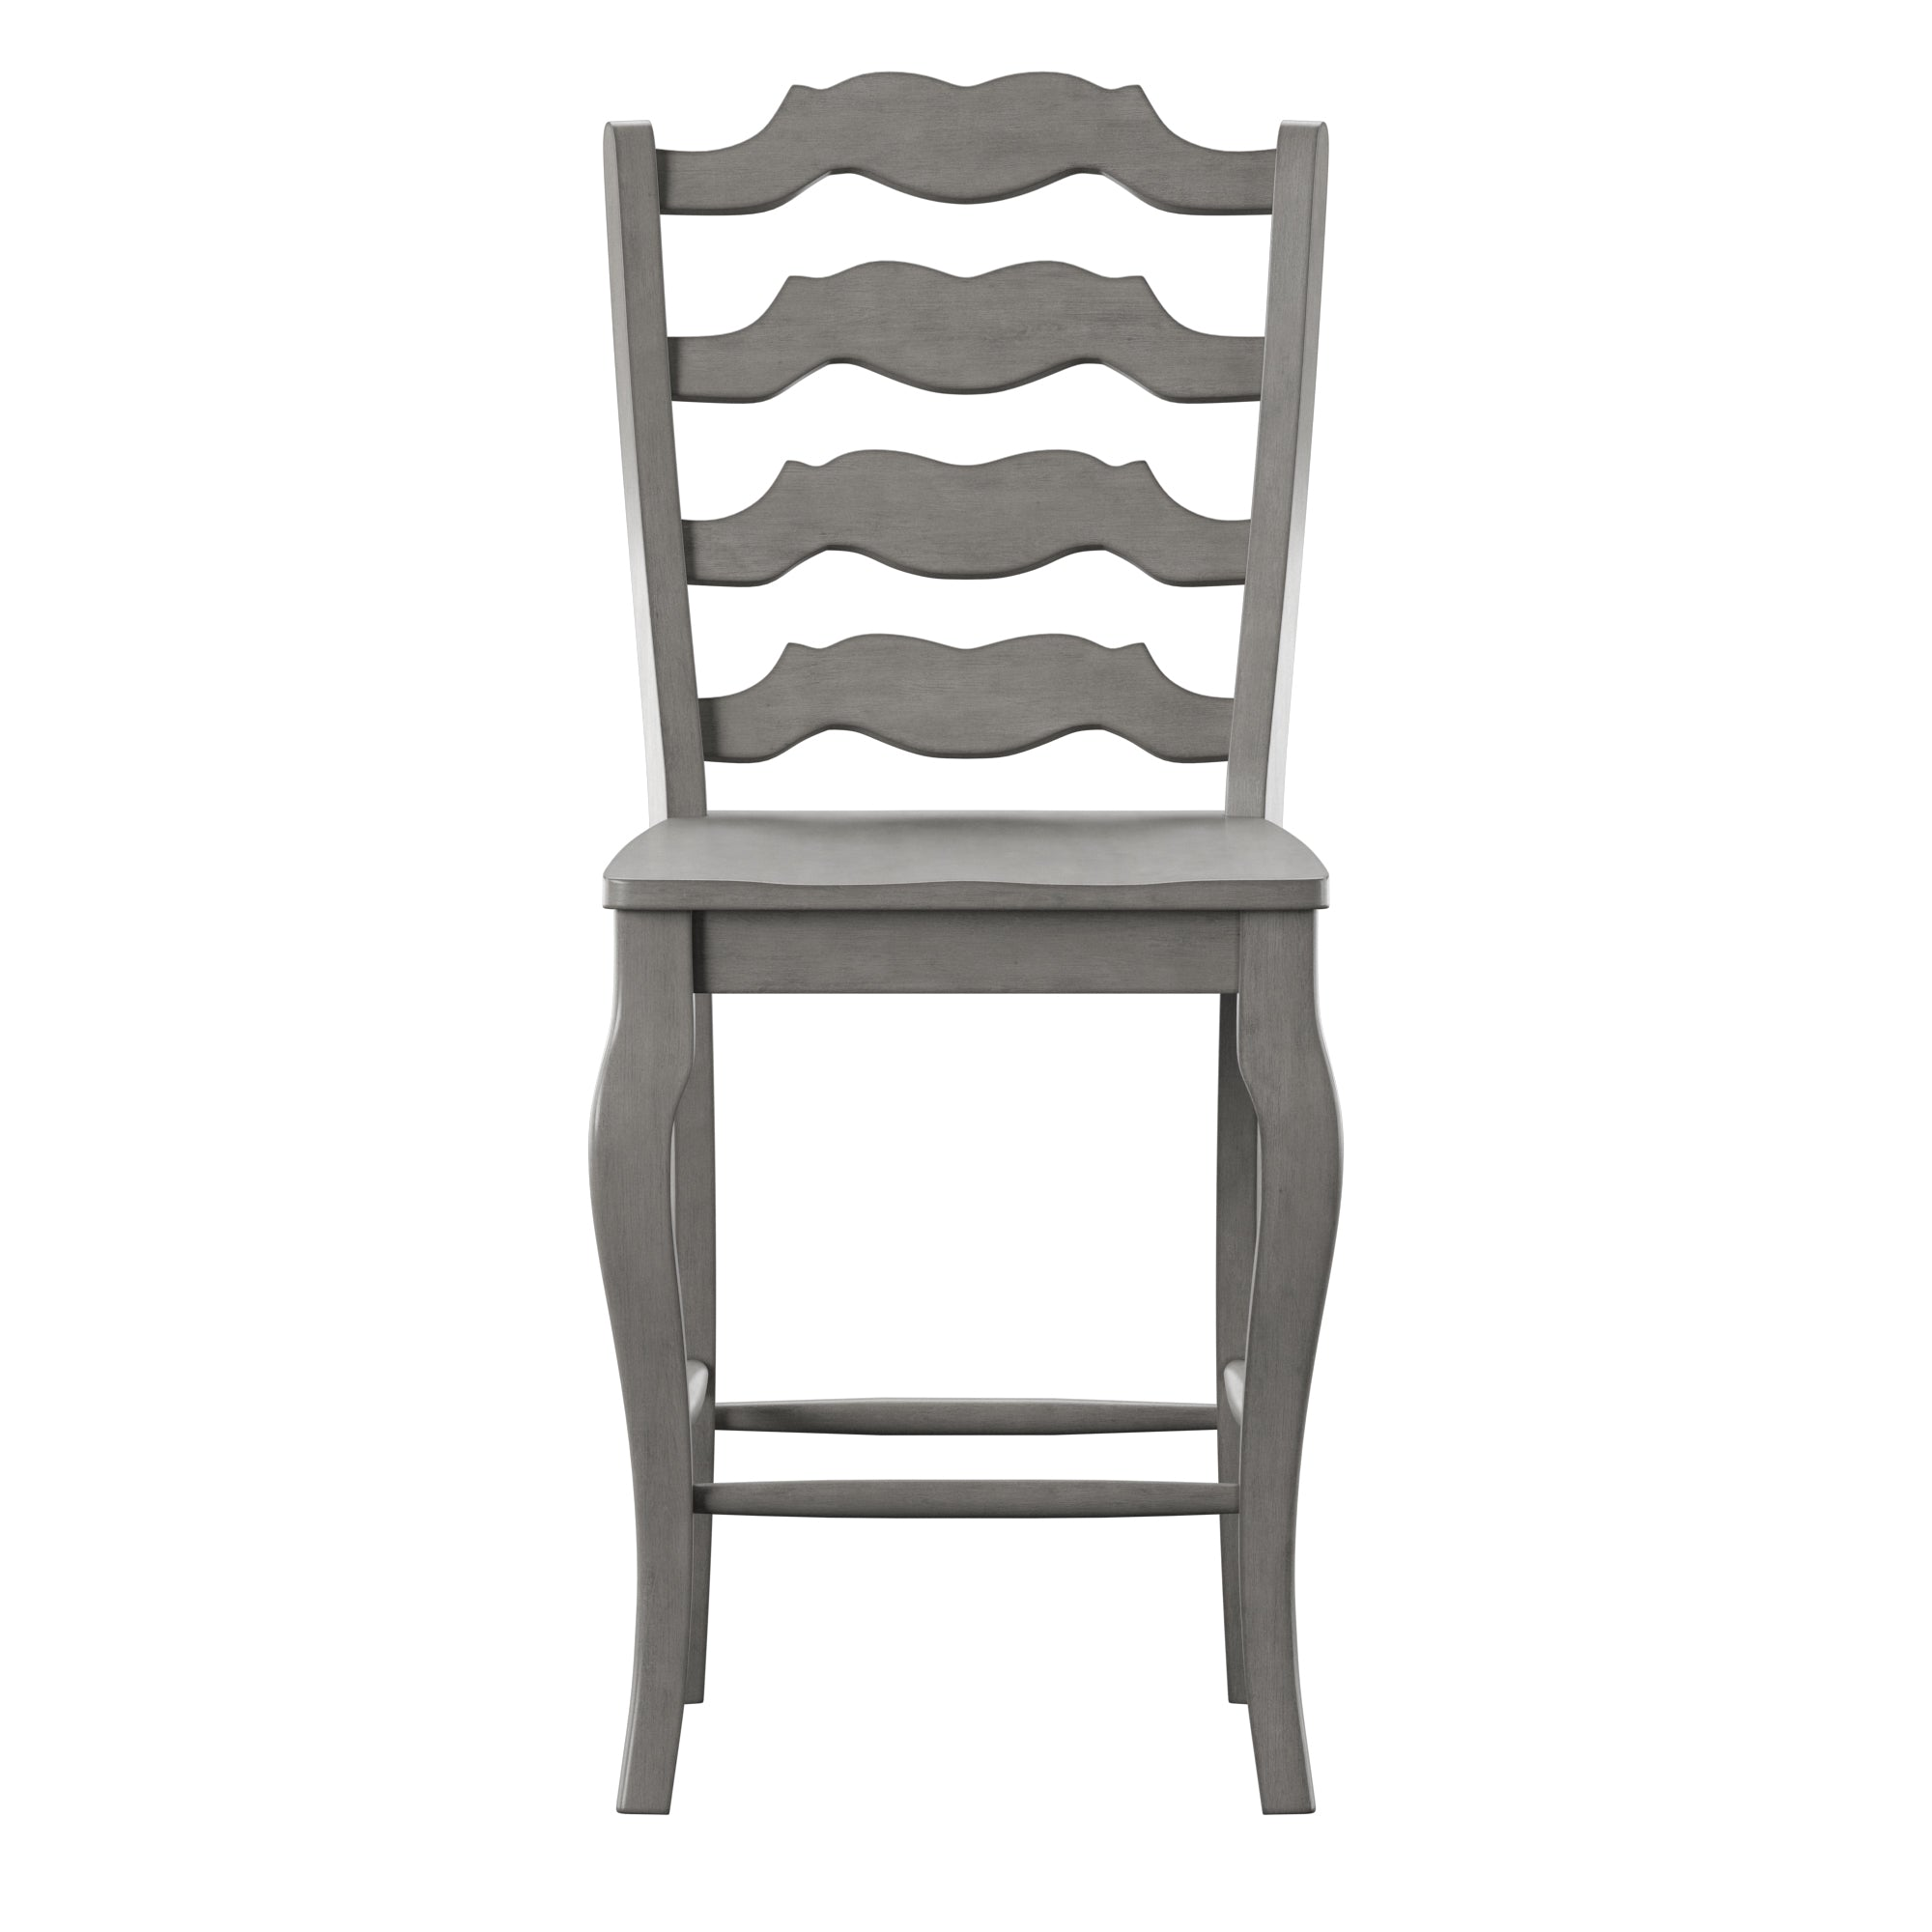 French Ladder Back Wood Counter Height Chair (Set of 2) - Antique Grey